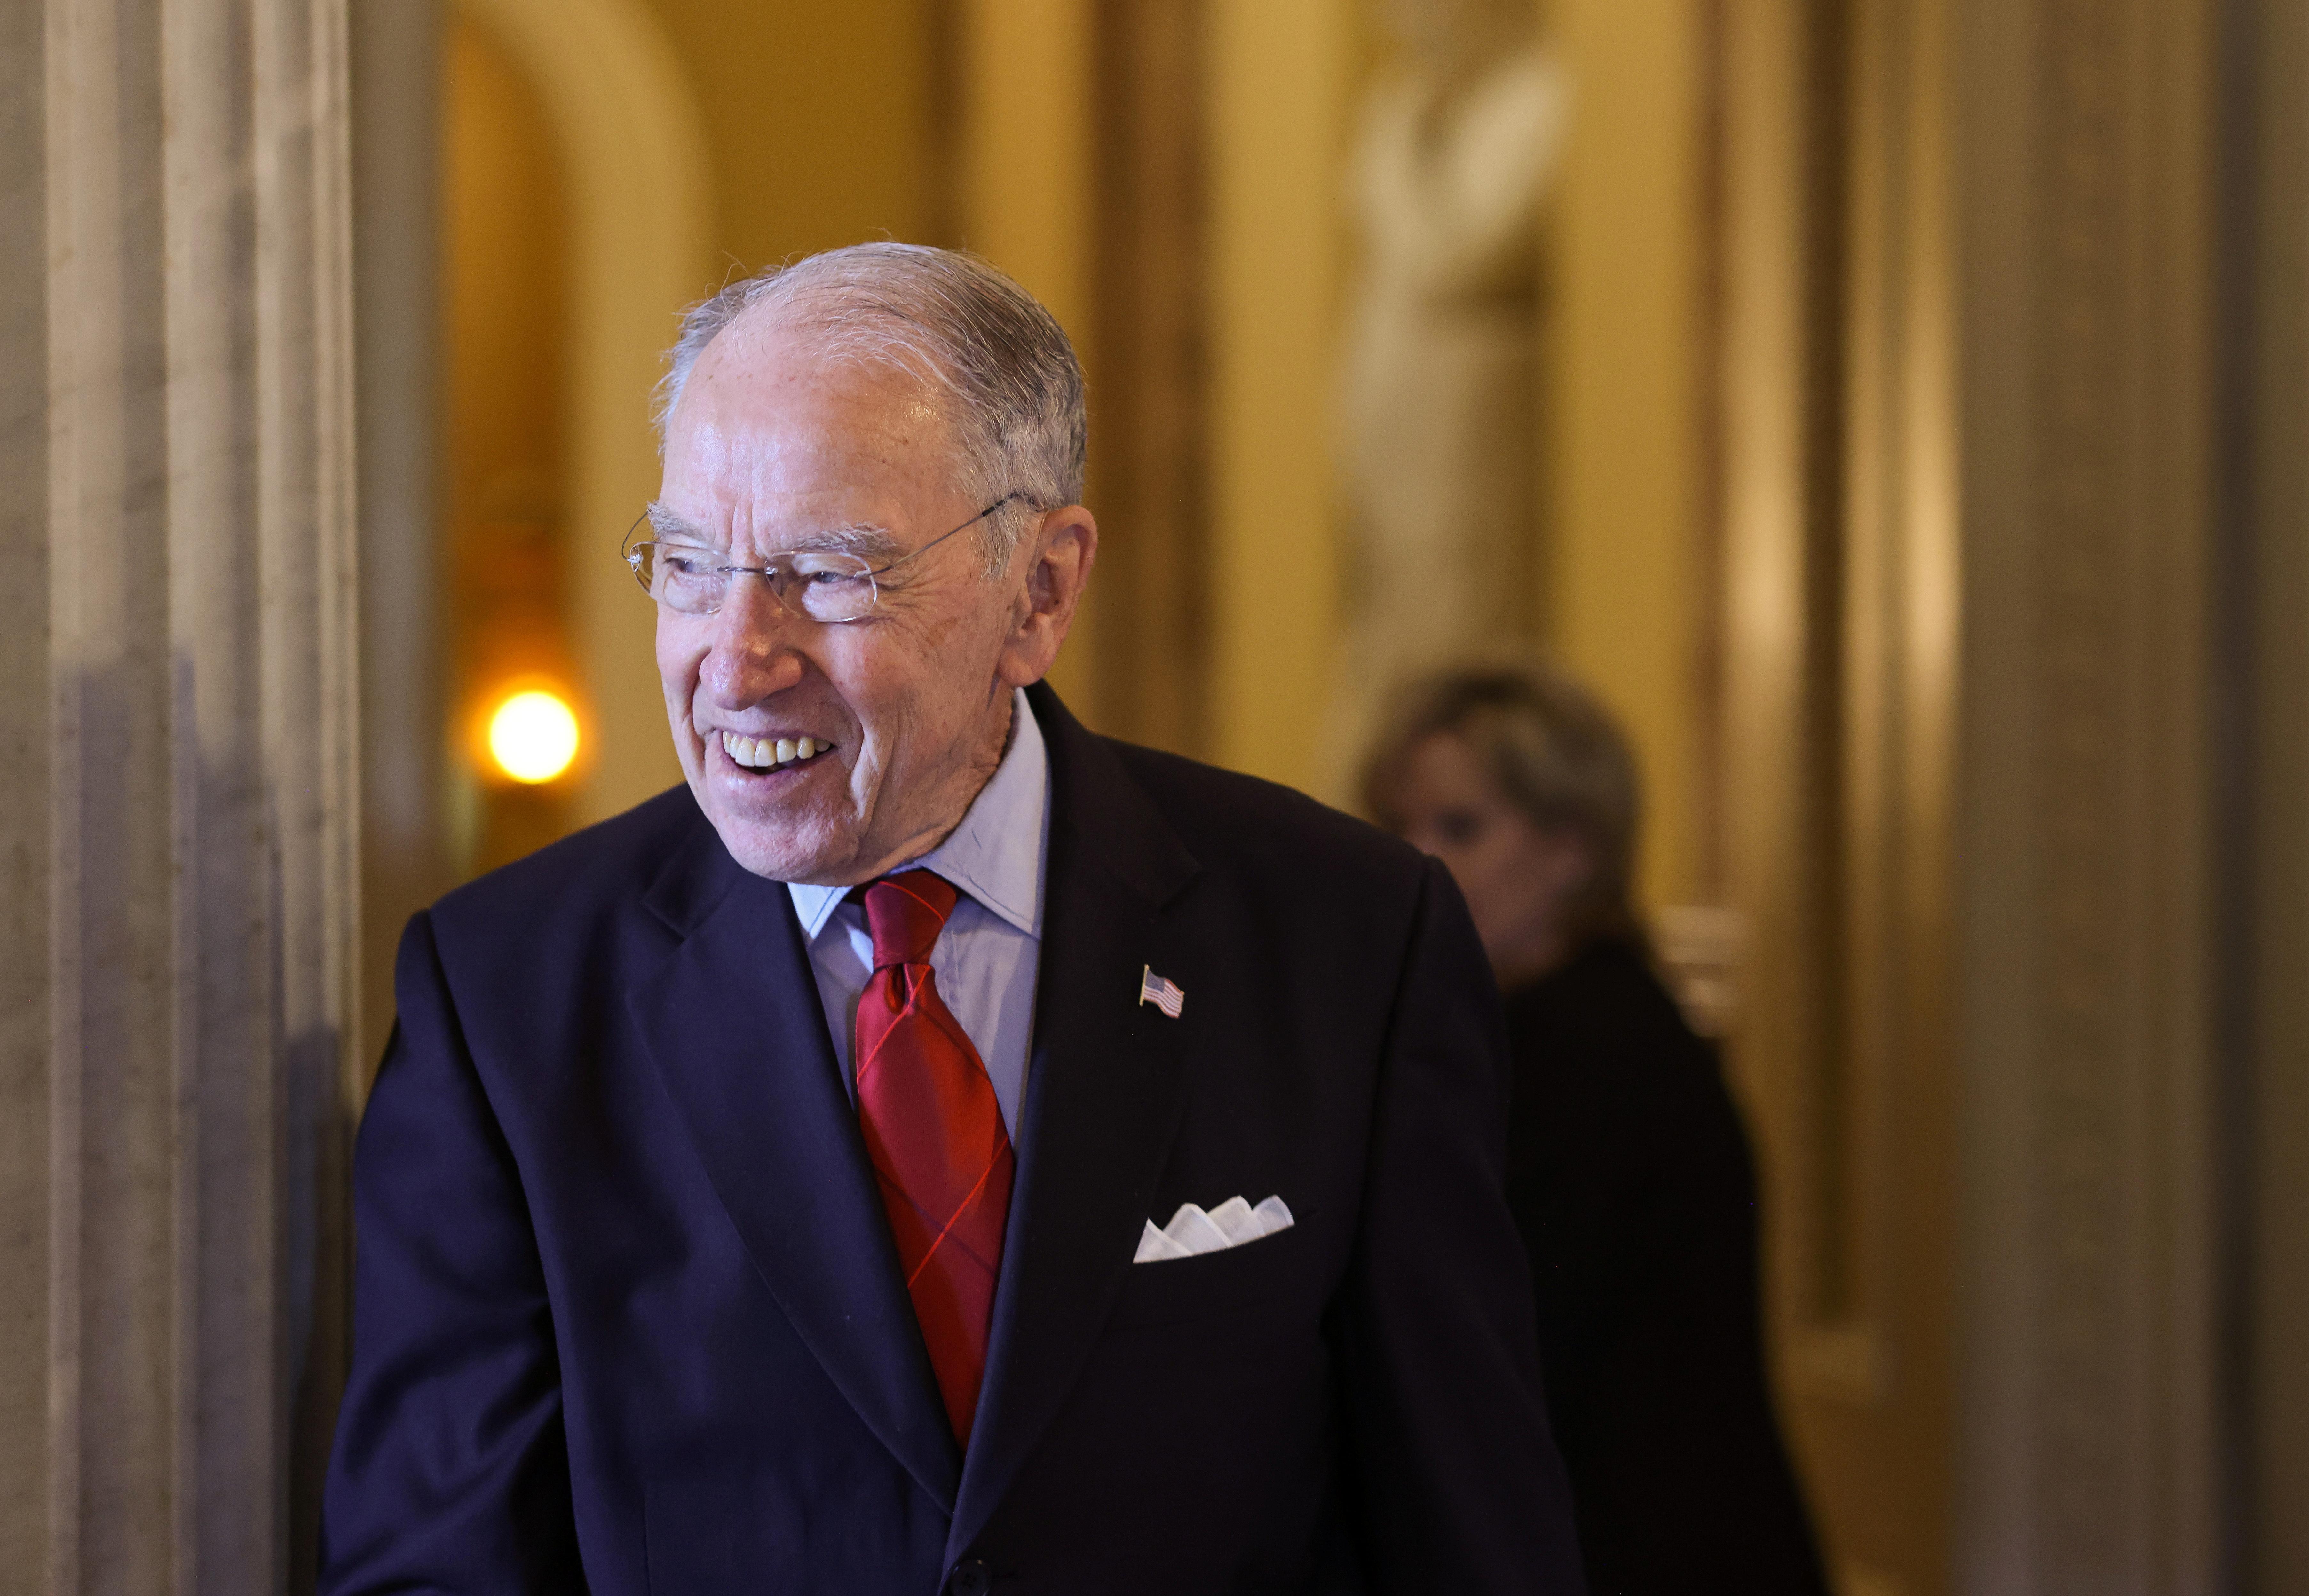 Senator Chuck Grassley (R-IA) leaves the Senate floor at the United States Capitol in Washington, U.S., August 9, 2021. REUTERS/Evelyn Hockstein